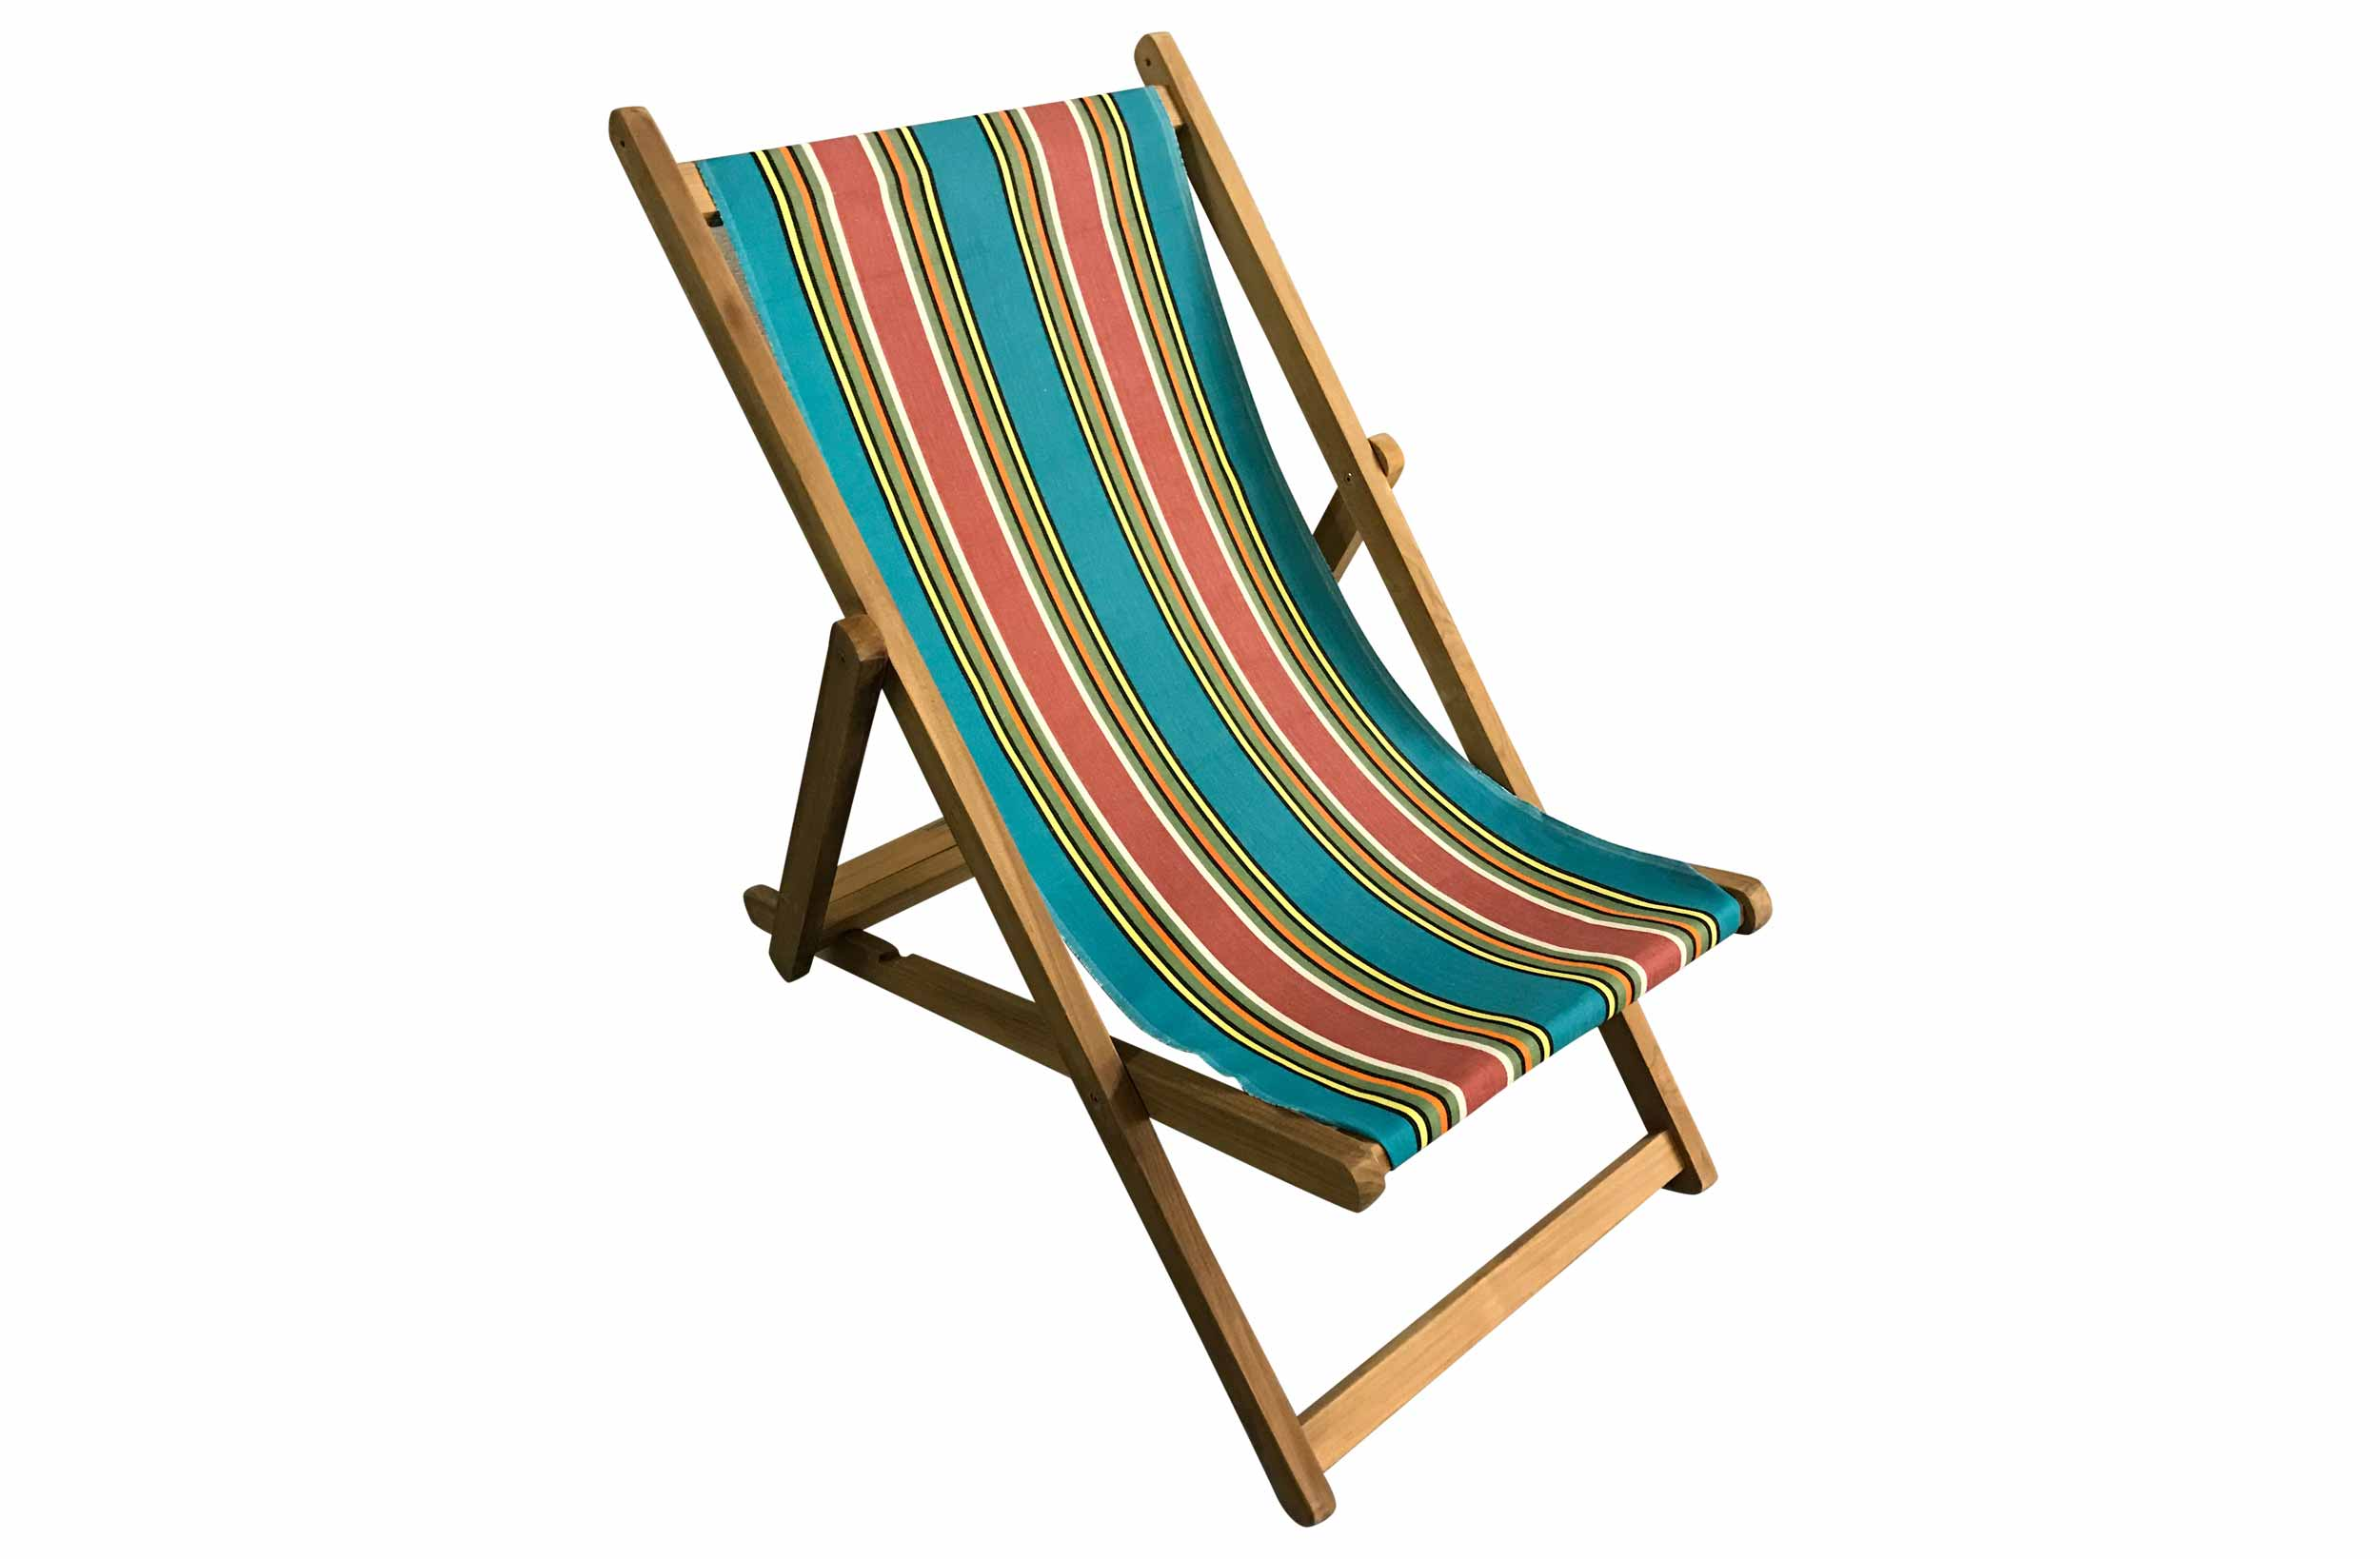 Turquoise Striped Deckchairs | Wooden Folding Deck Chairs Bagatelle Stripes